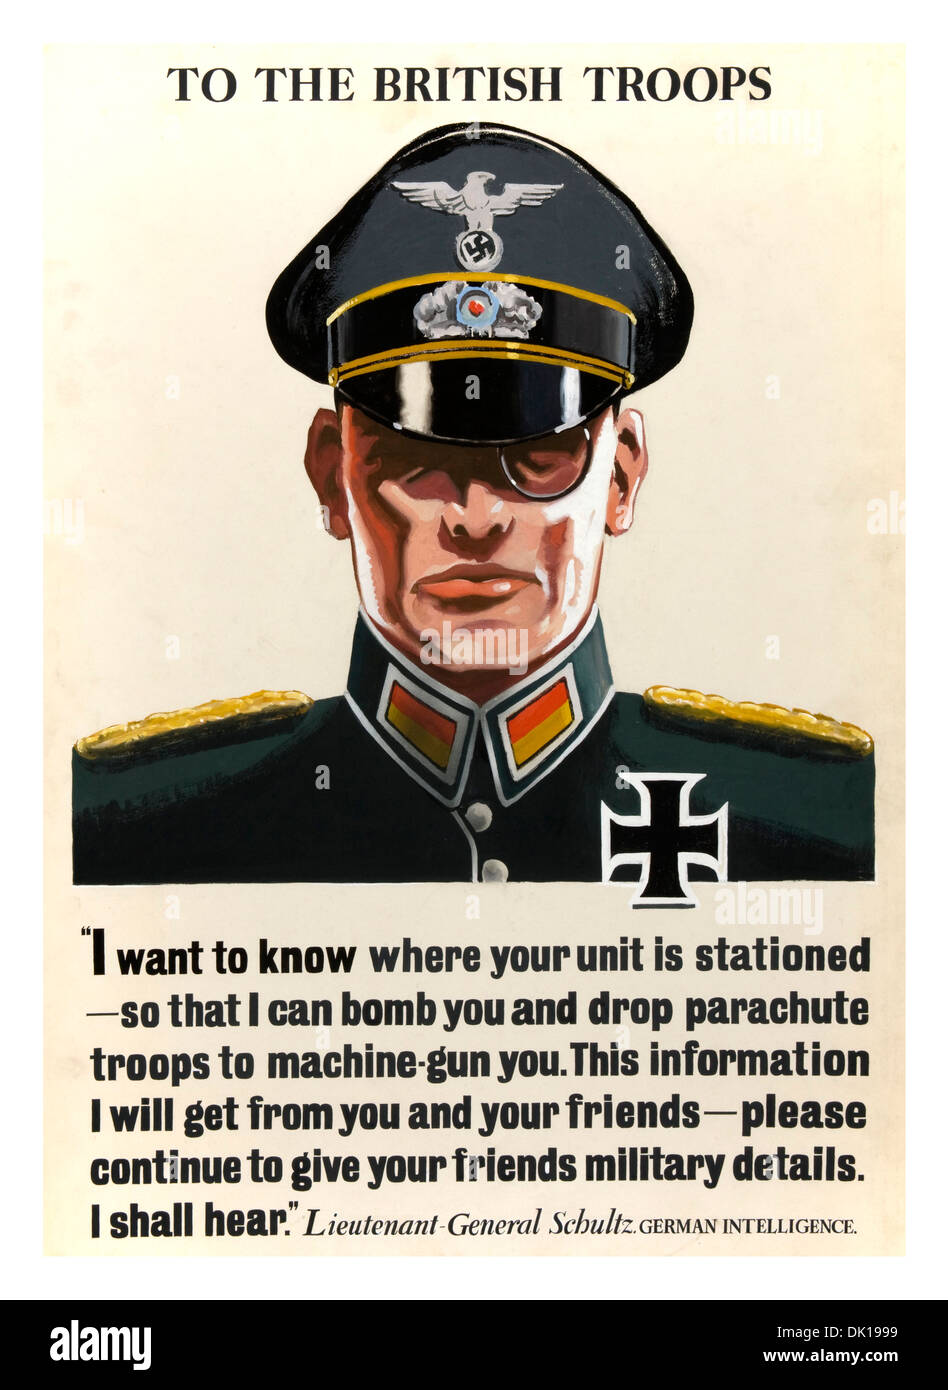 WW2 propaganda poster reminding British troops to keep operational information secret and secure - Stock Image